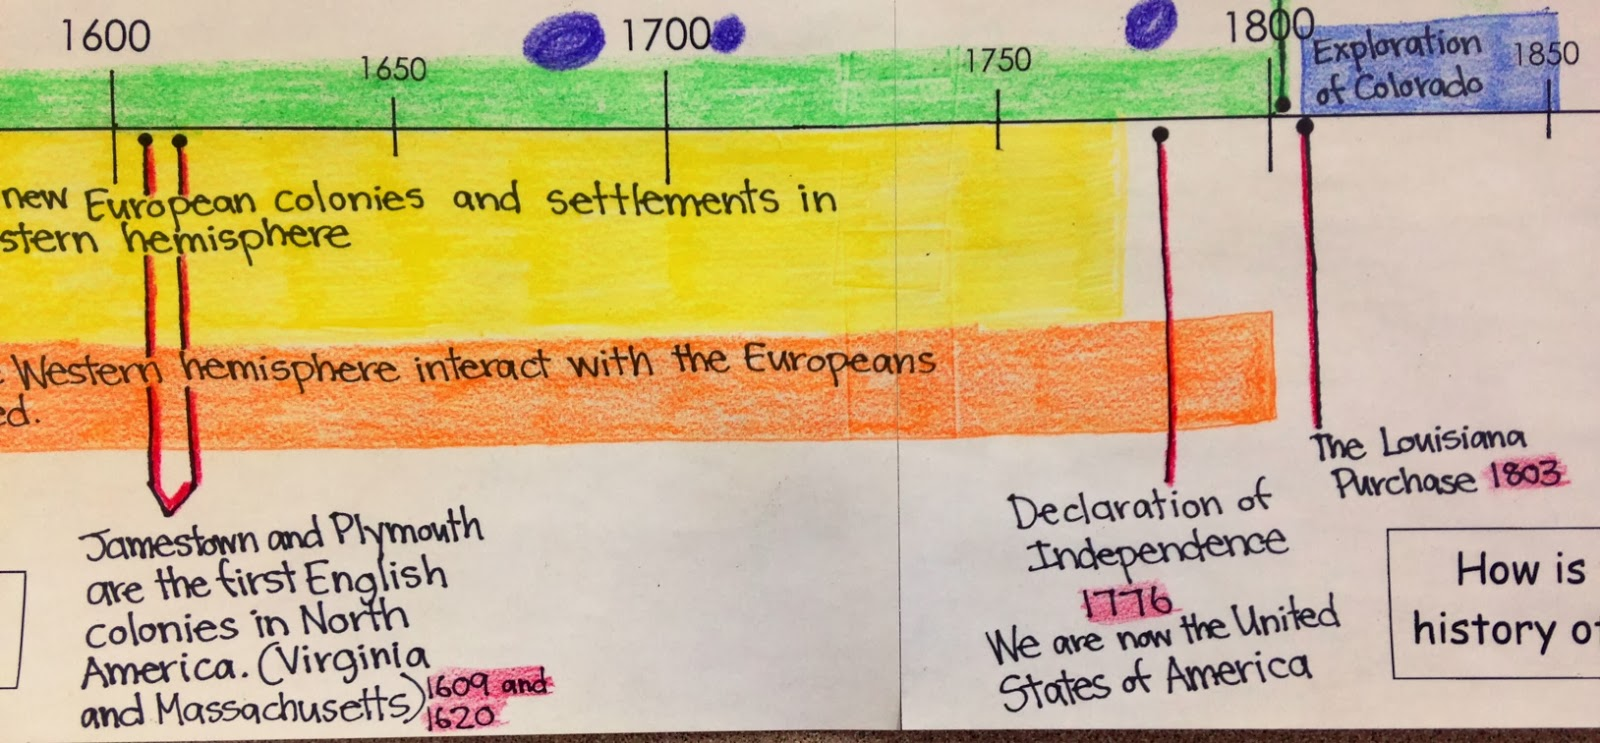 step 5 add the next key events or eras in u s history